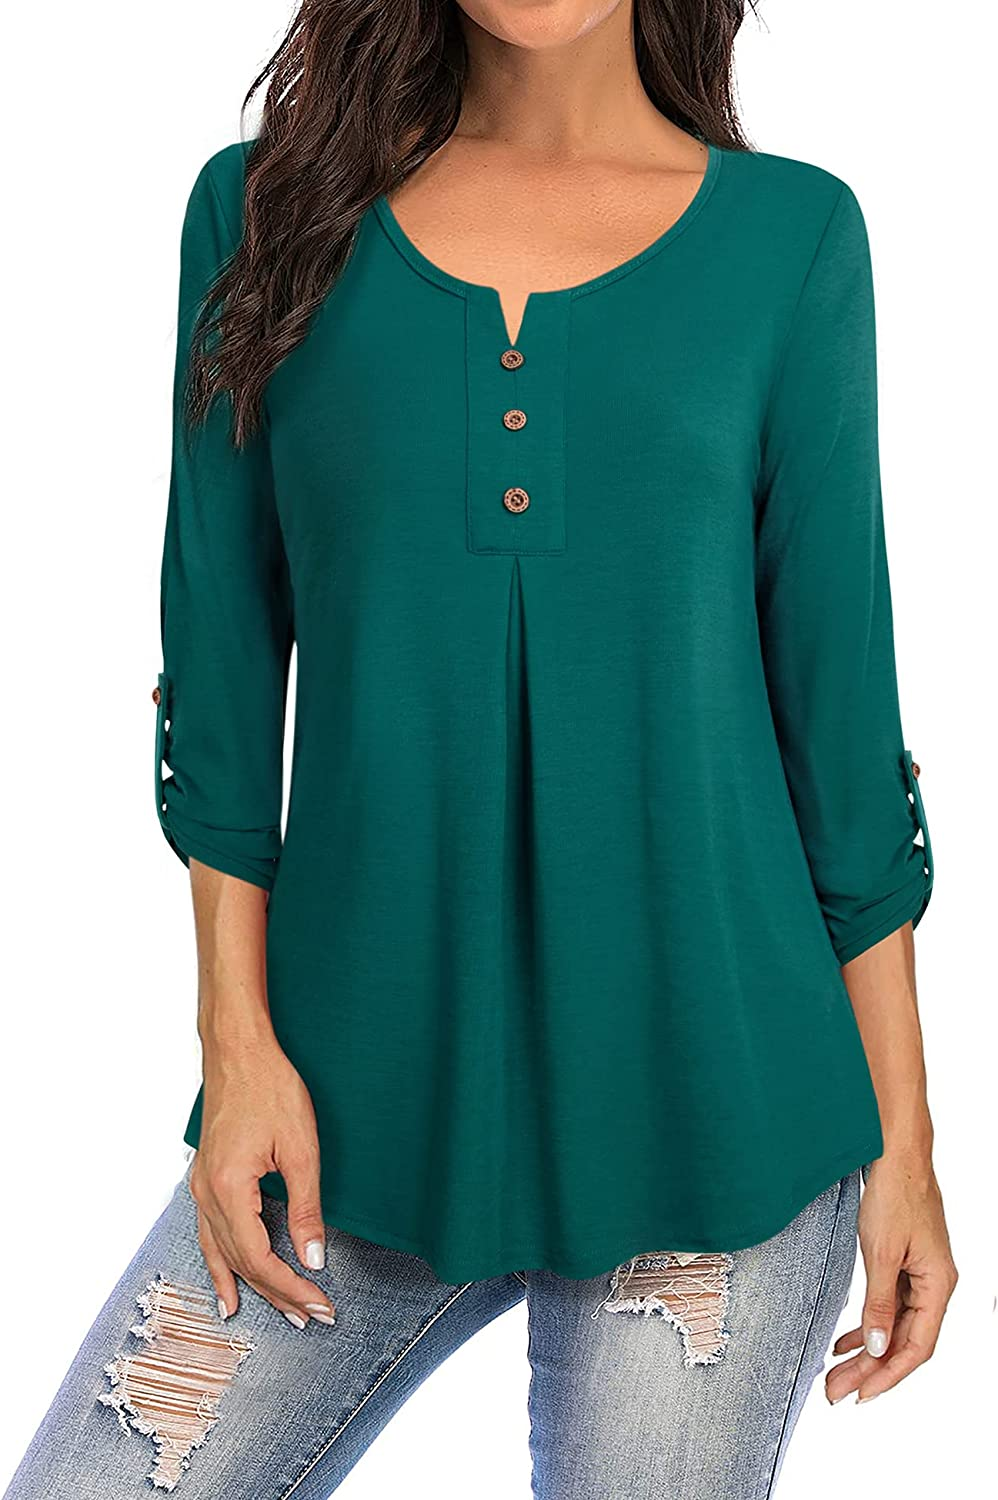 Furnex Women's Casual 3/4 Sleeve Shirts Round Neck Blouses Pleated Tunic Tops with Buttons